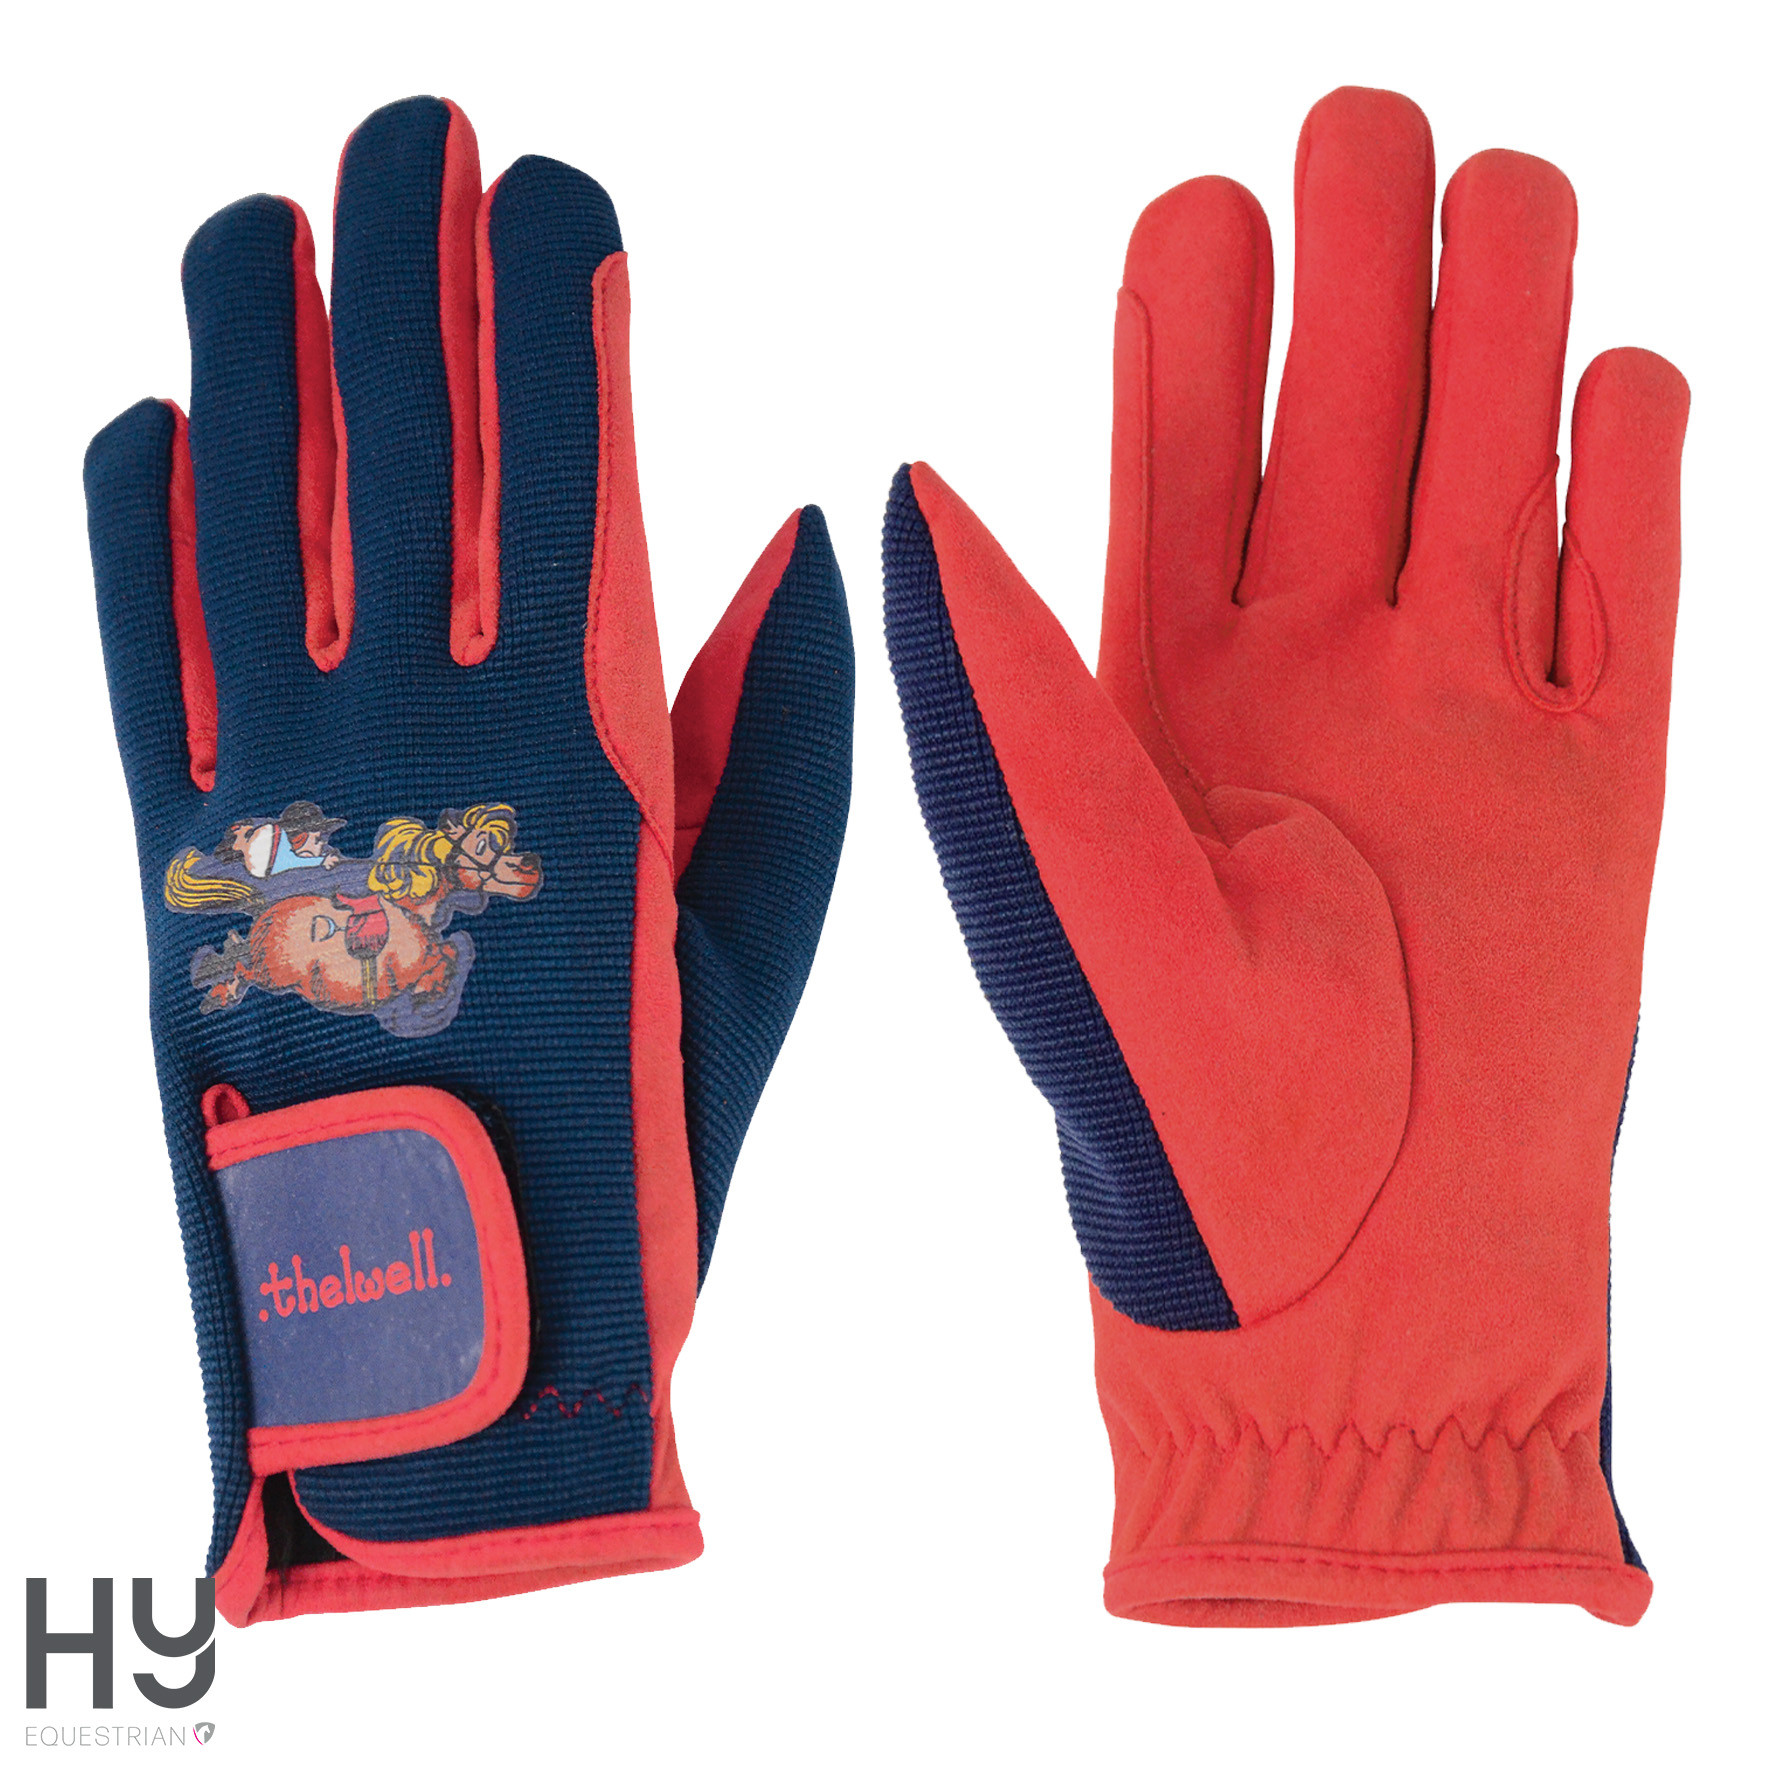 Thelwell Collection Children's Riding Gloves